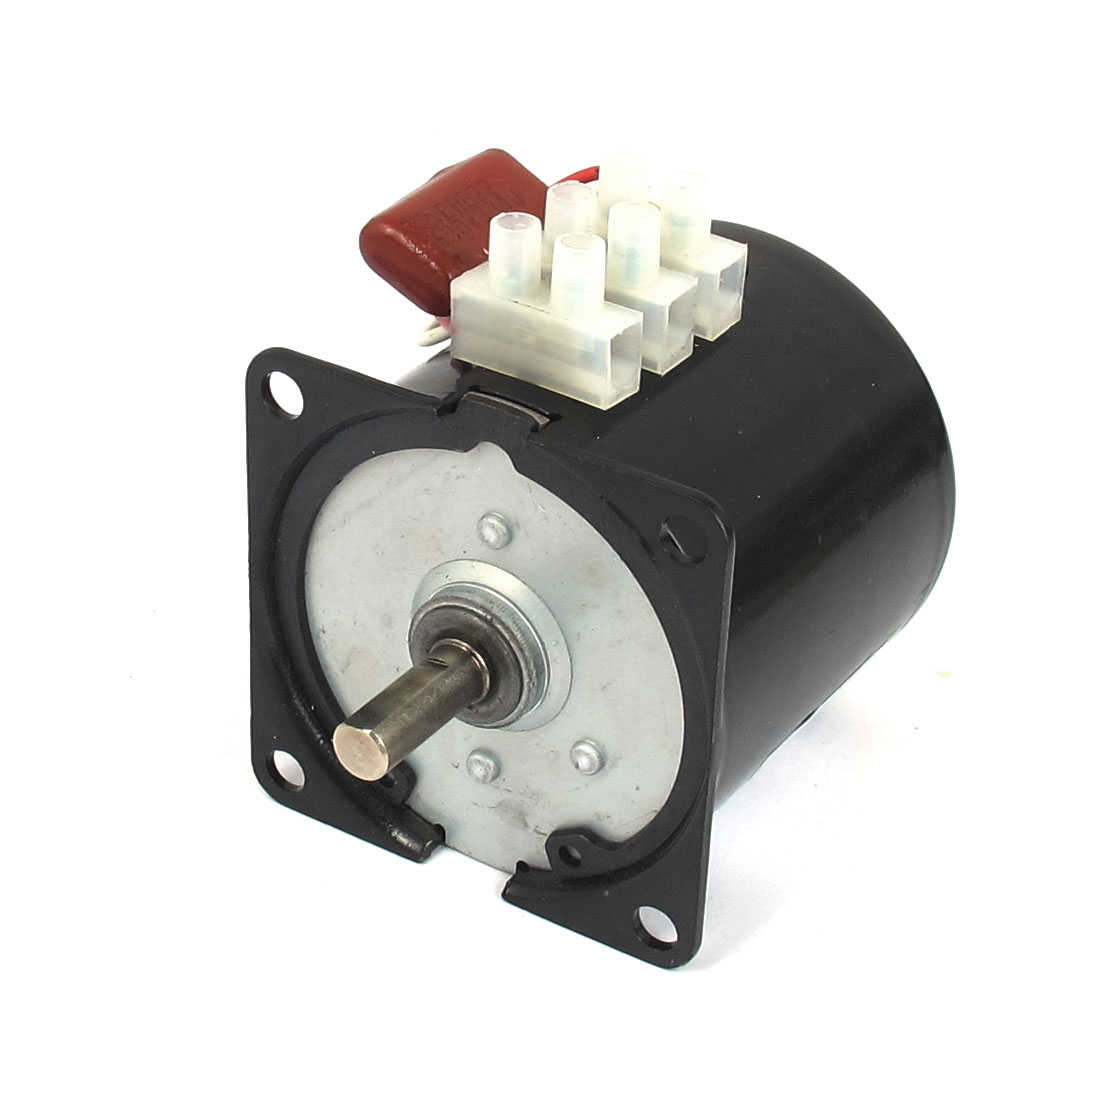 AC 220V 10RPM 50Hz Electric Machine Gear Motor 60KTYZ w Capacitor